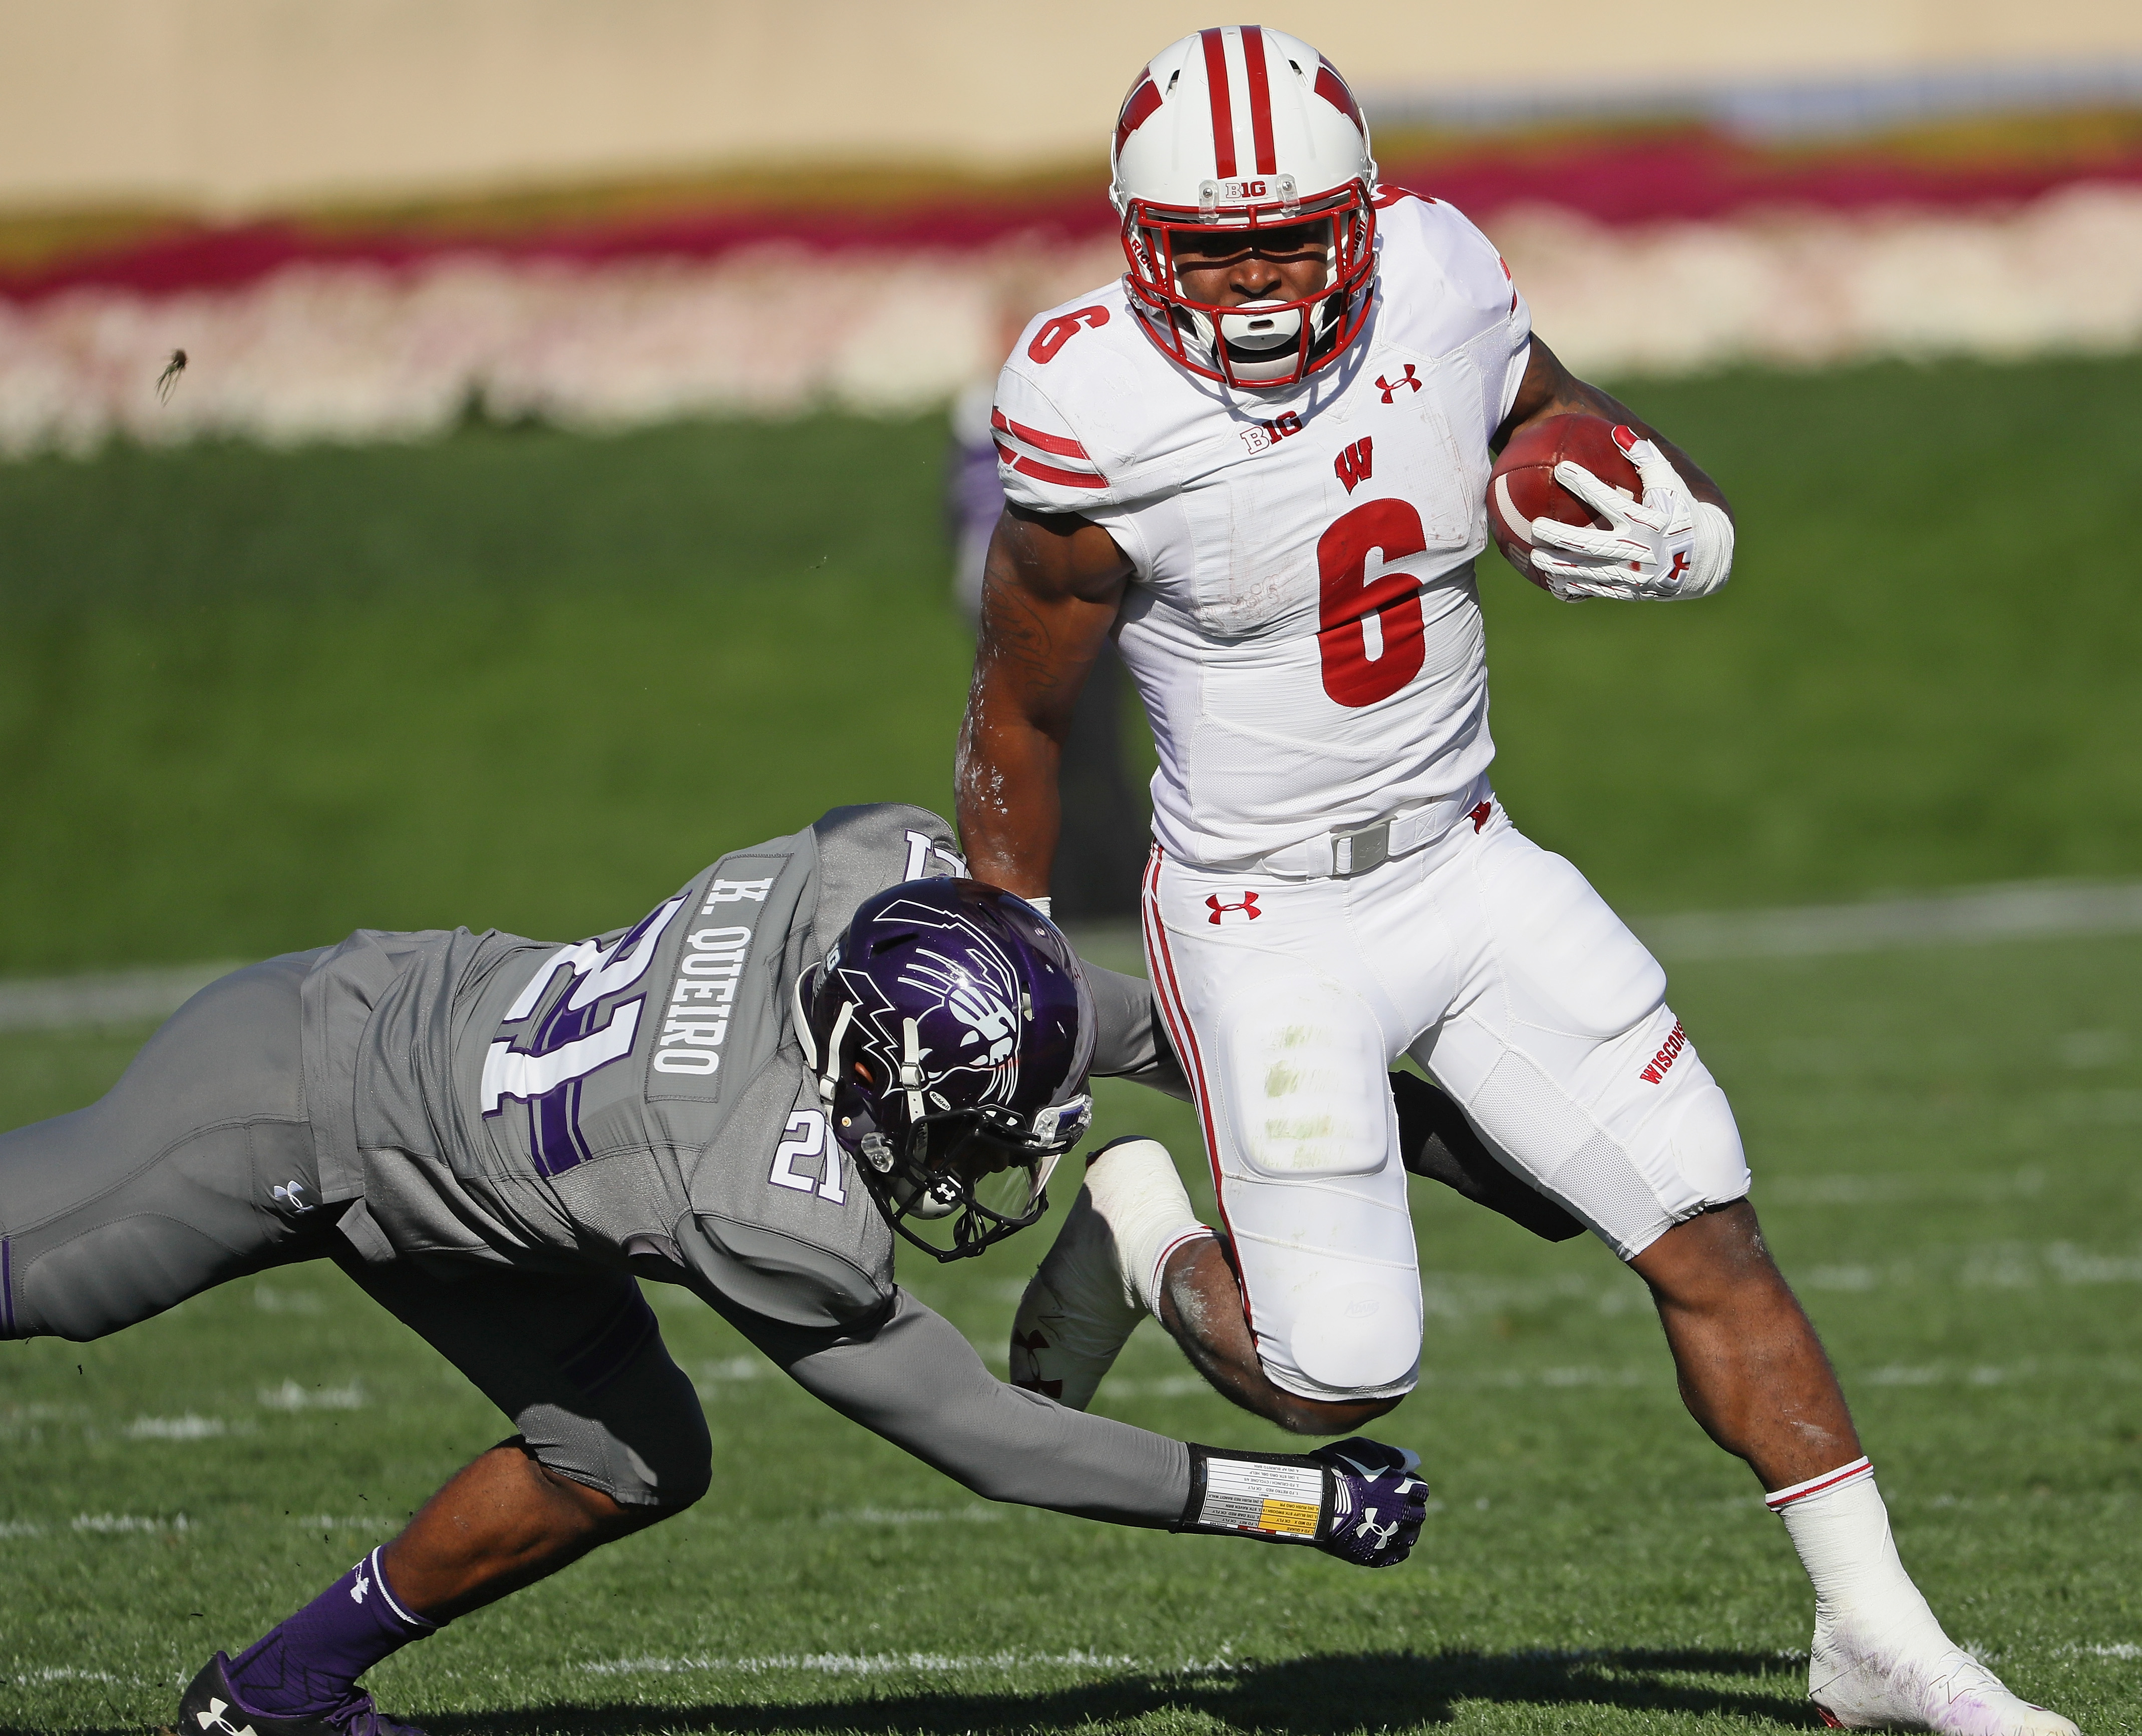 Wisconsin Badgers Football: Illinois Comes to Madison Hoping to Ruin UW Title Hopes